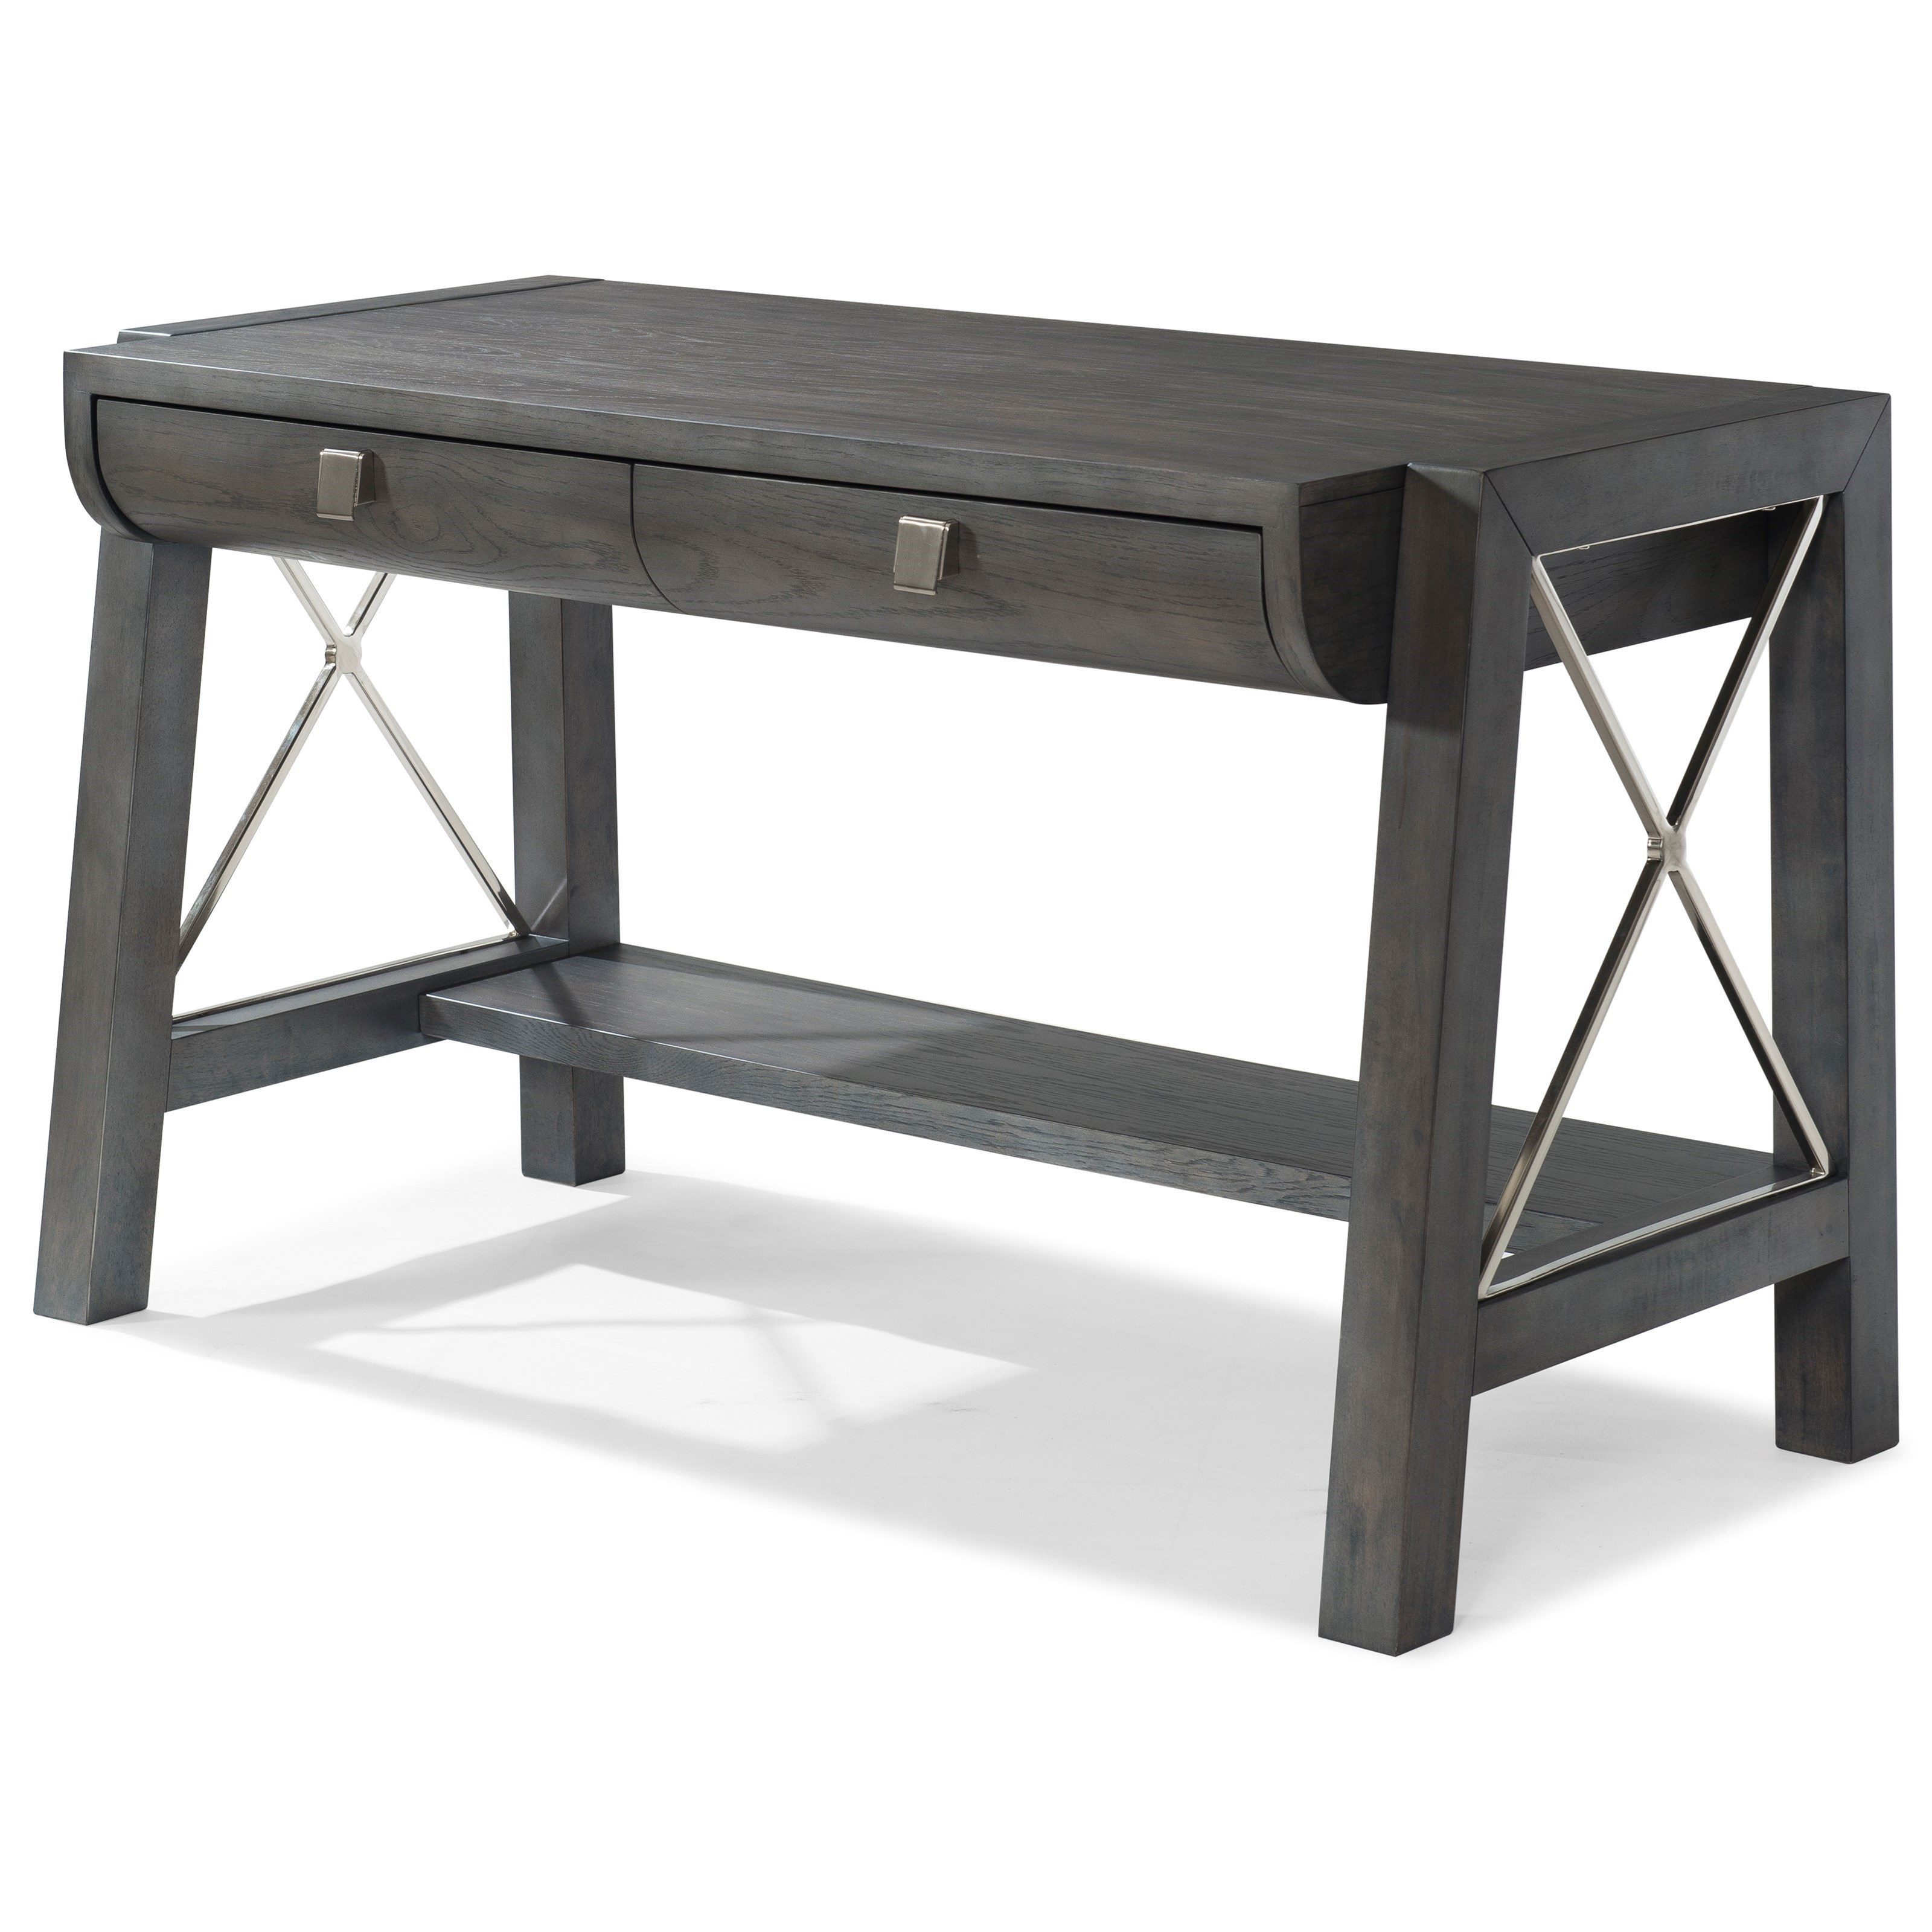 "Trisha Yearwood Home Collection by Klaussner Music City ""Where Are You Now"" Desk - Item Number: 925-850 DESK"